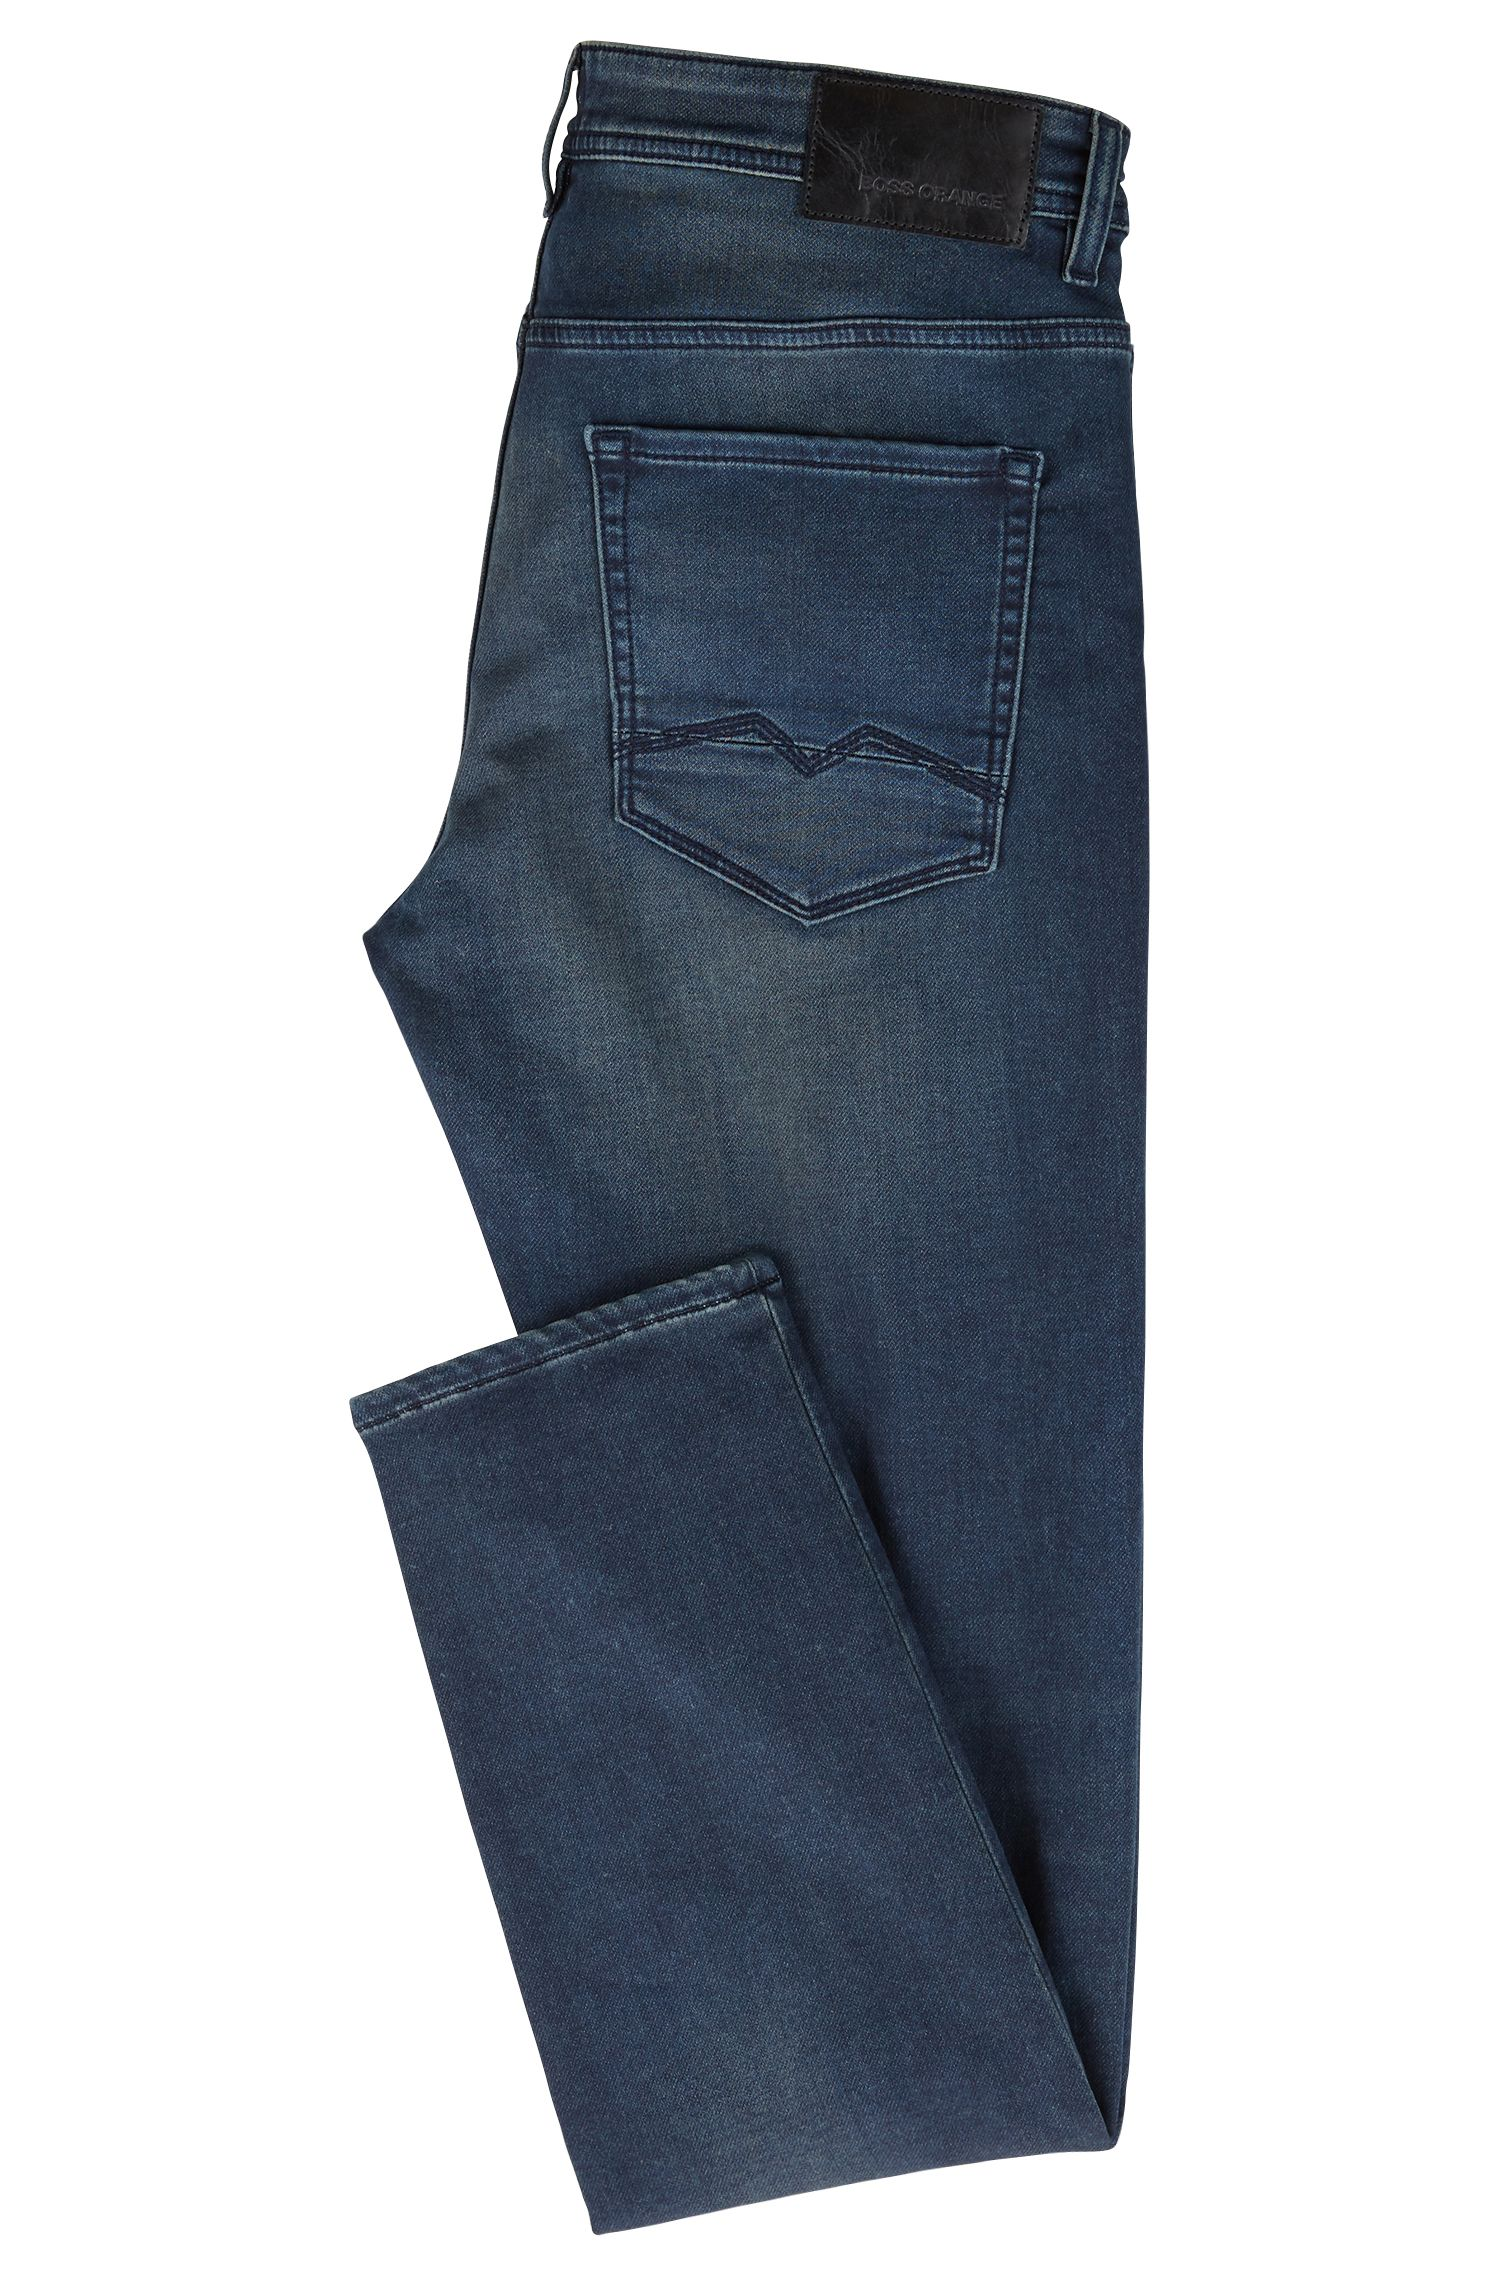 Stretch Cotton Jean, Tapered Fit | Orange90 P, Dark Blue